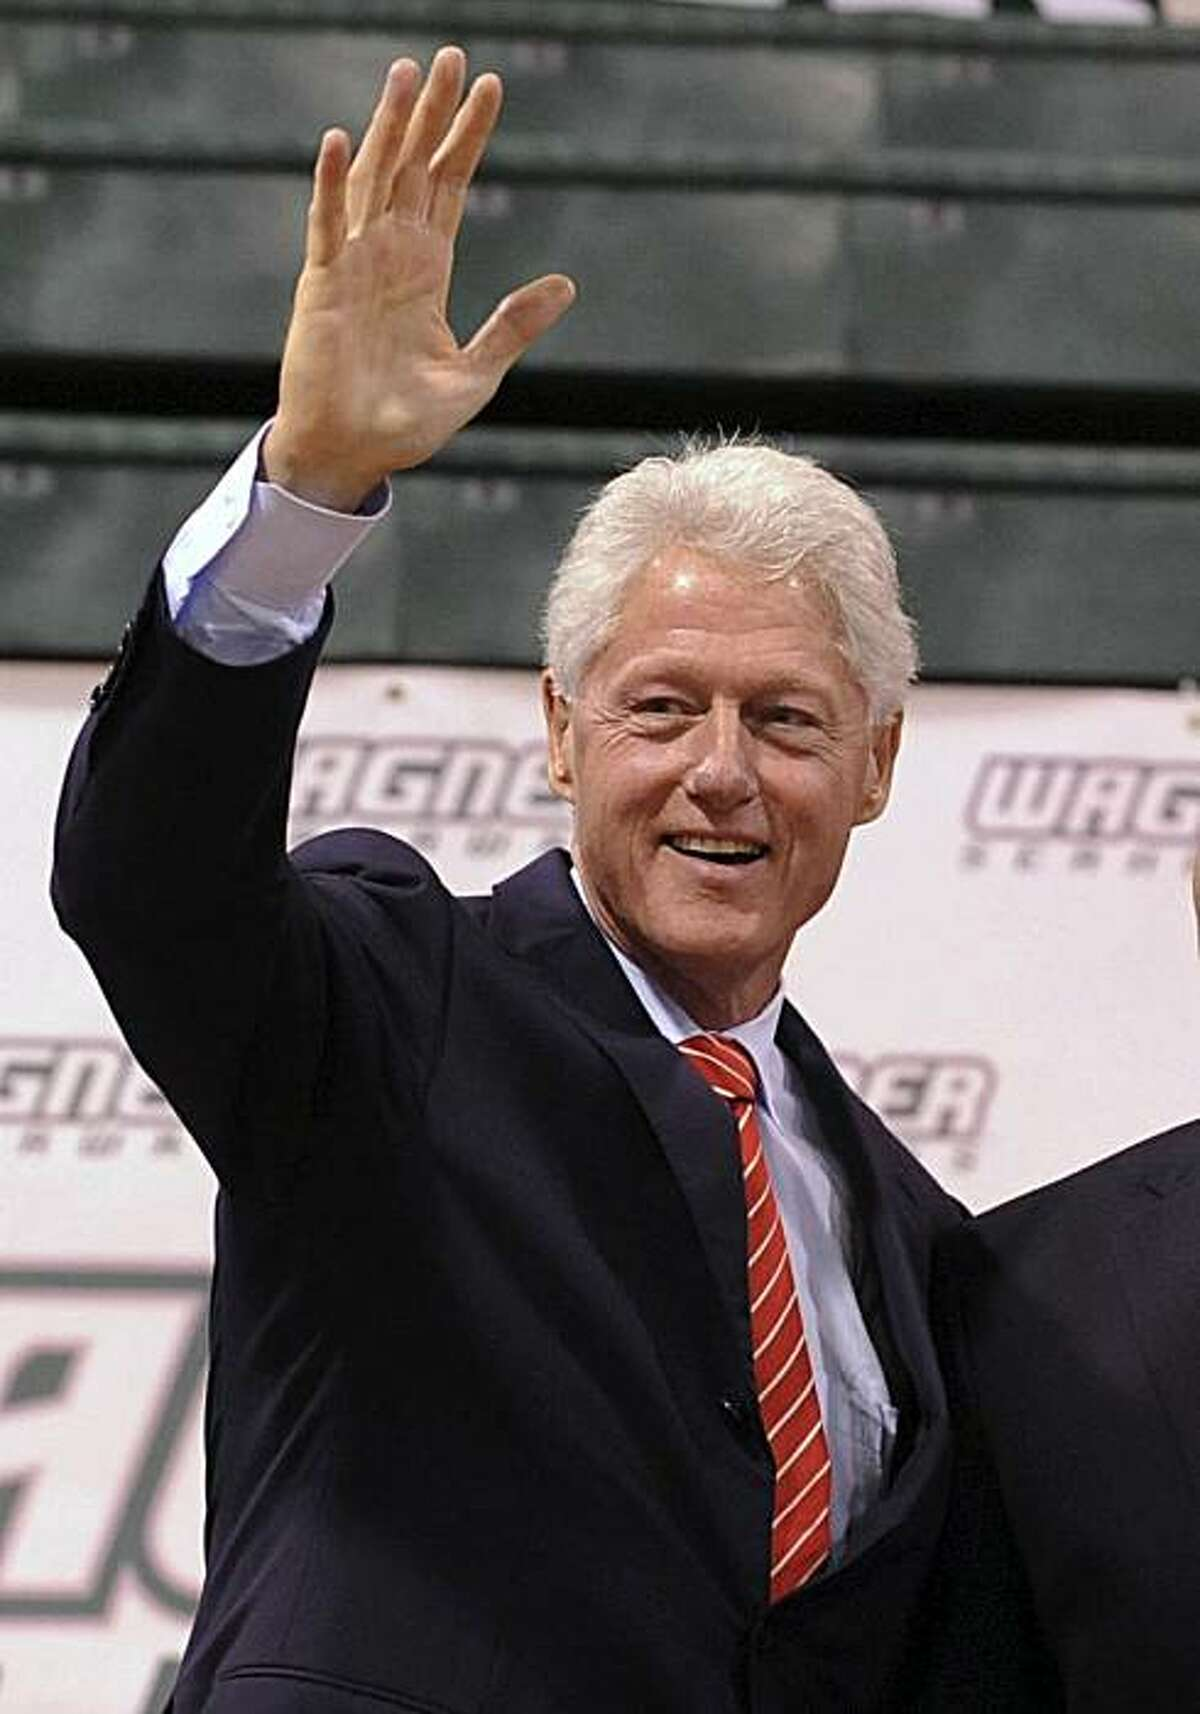 FILE - In this Sept. 8, 2010 file photo, former President Bill Clinton, left, appears at a rally in support of first-term Democratic Rep. Mike McMahon, in the Staten Island borough of New York. Comedy Central says former President Bill Clinton will visit